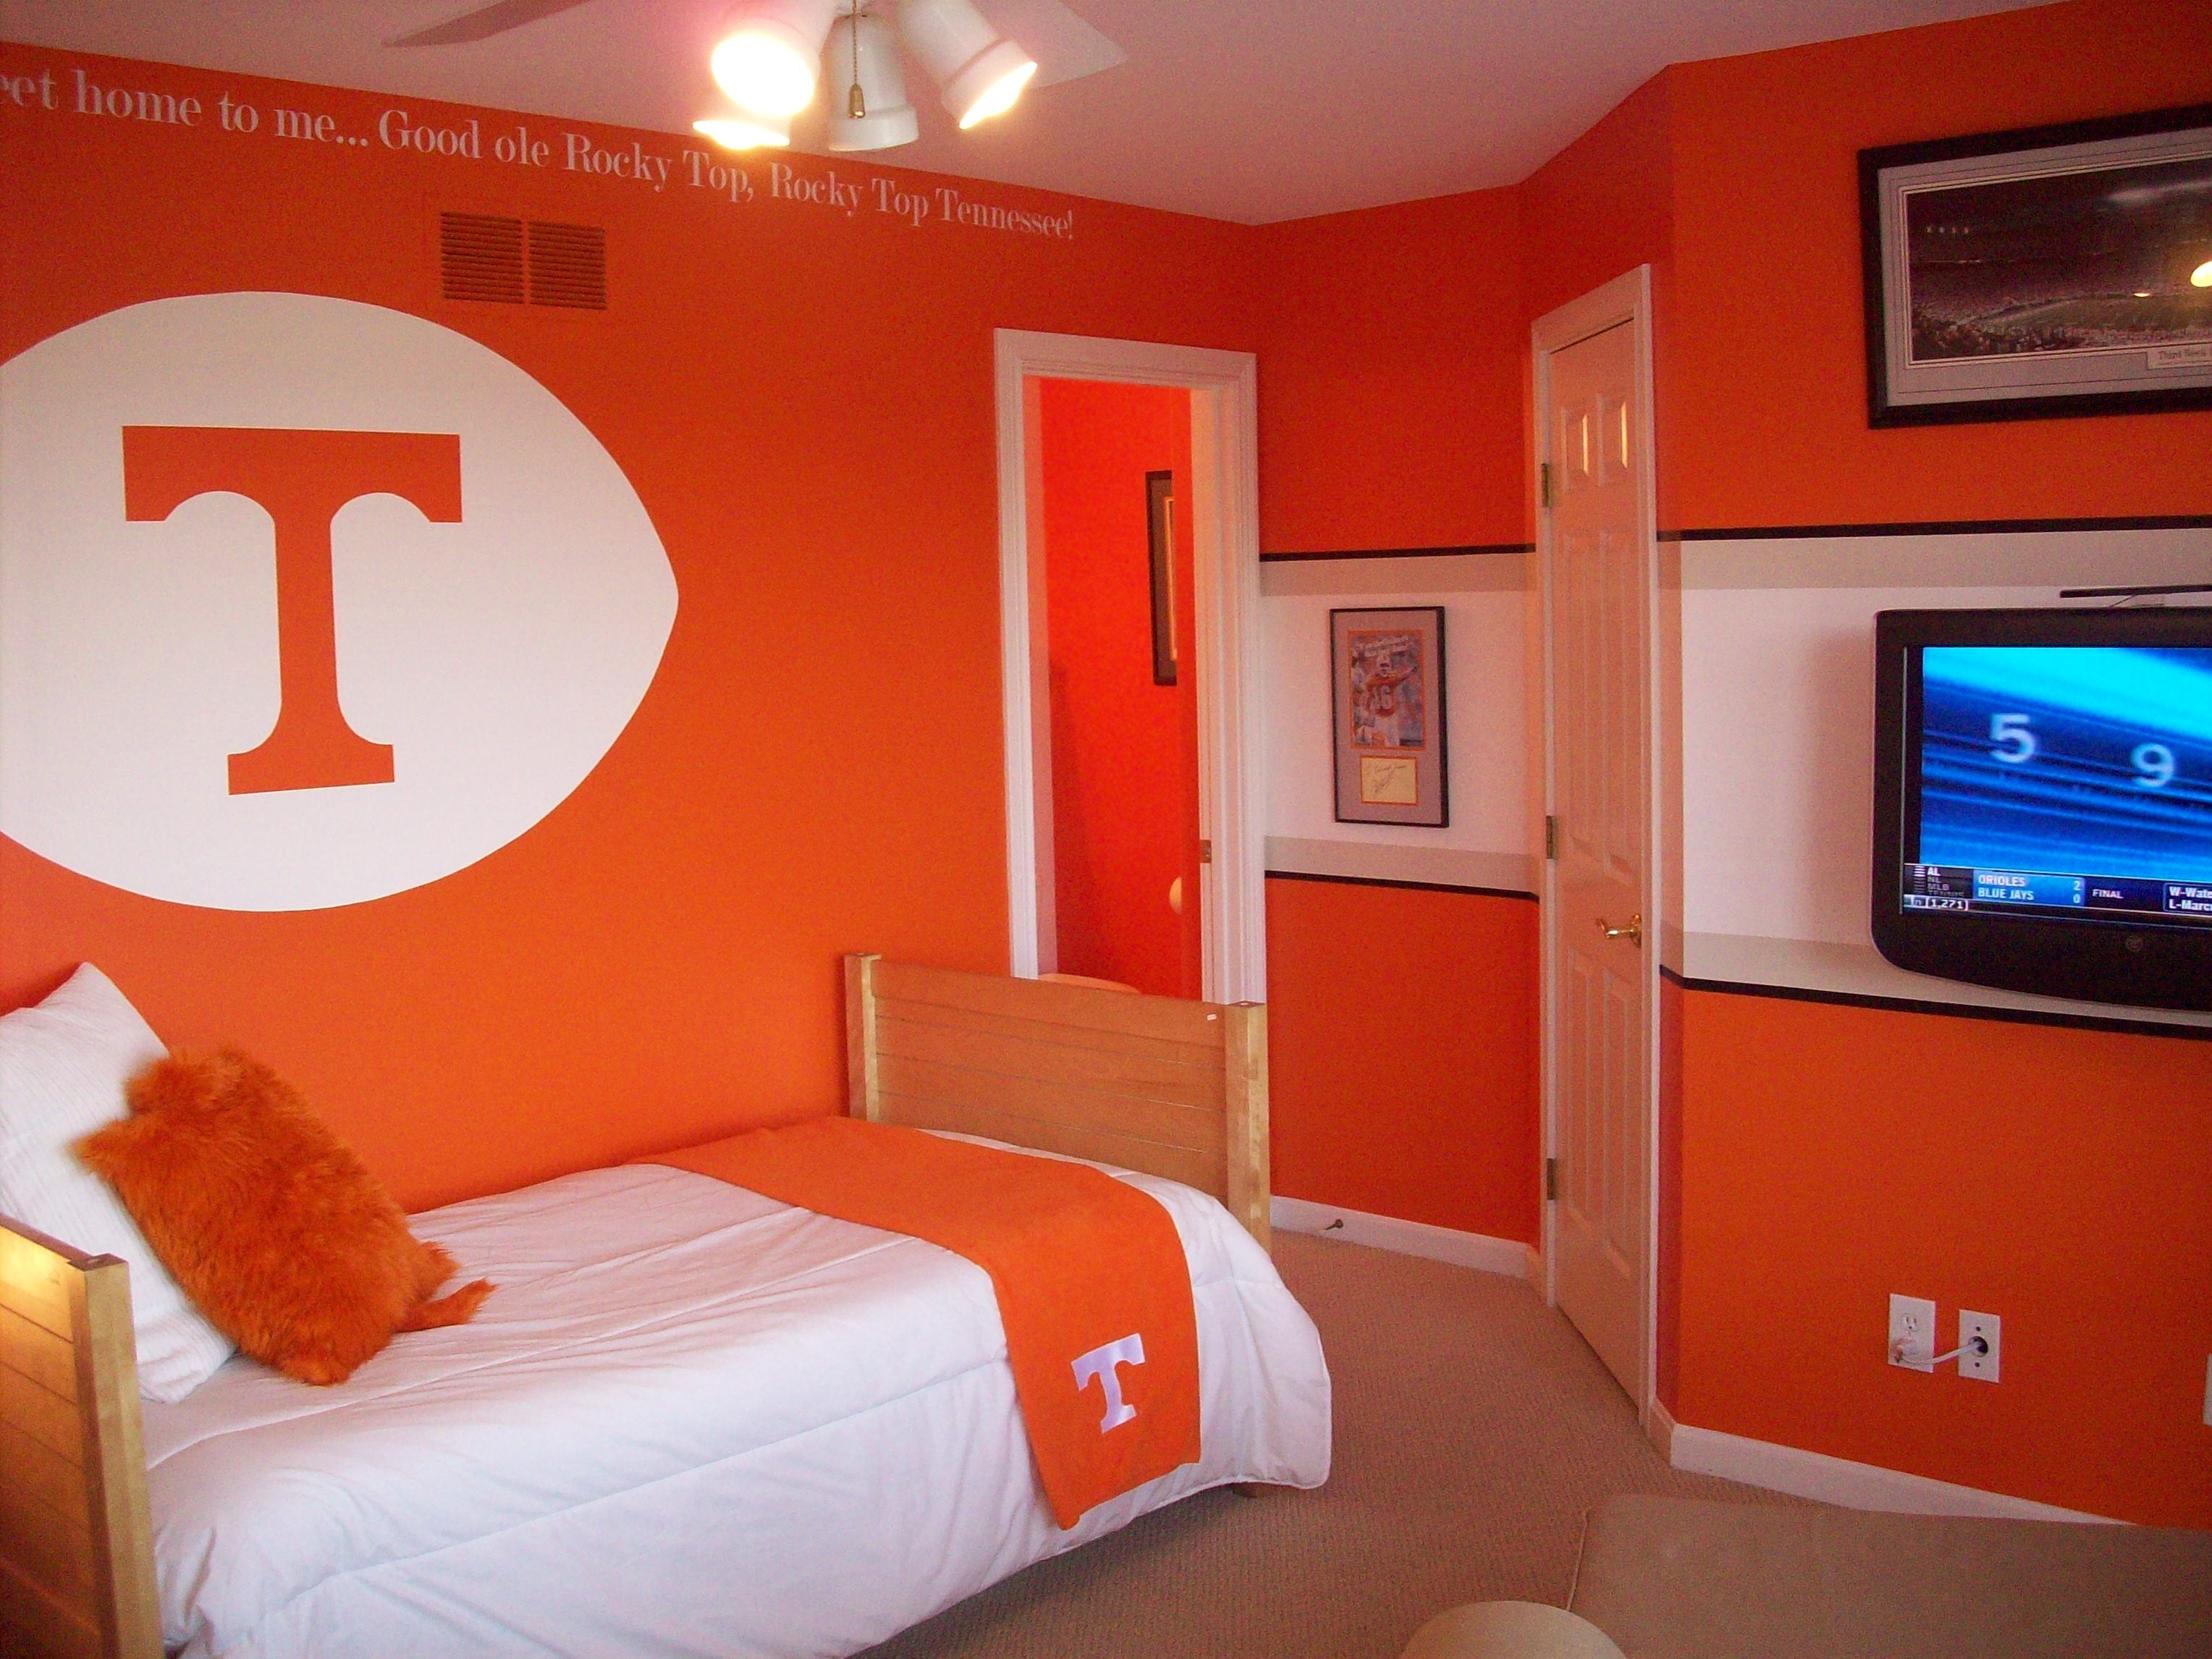 Stupendous Go Vols Leigh Hutcheson This Is The Room For Yall Dailytribune Chair Design For Home Dailytribuneorg